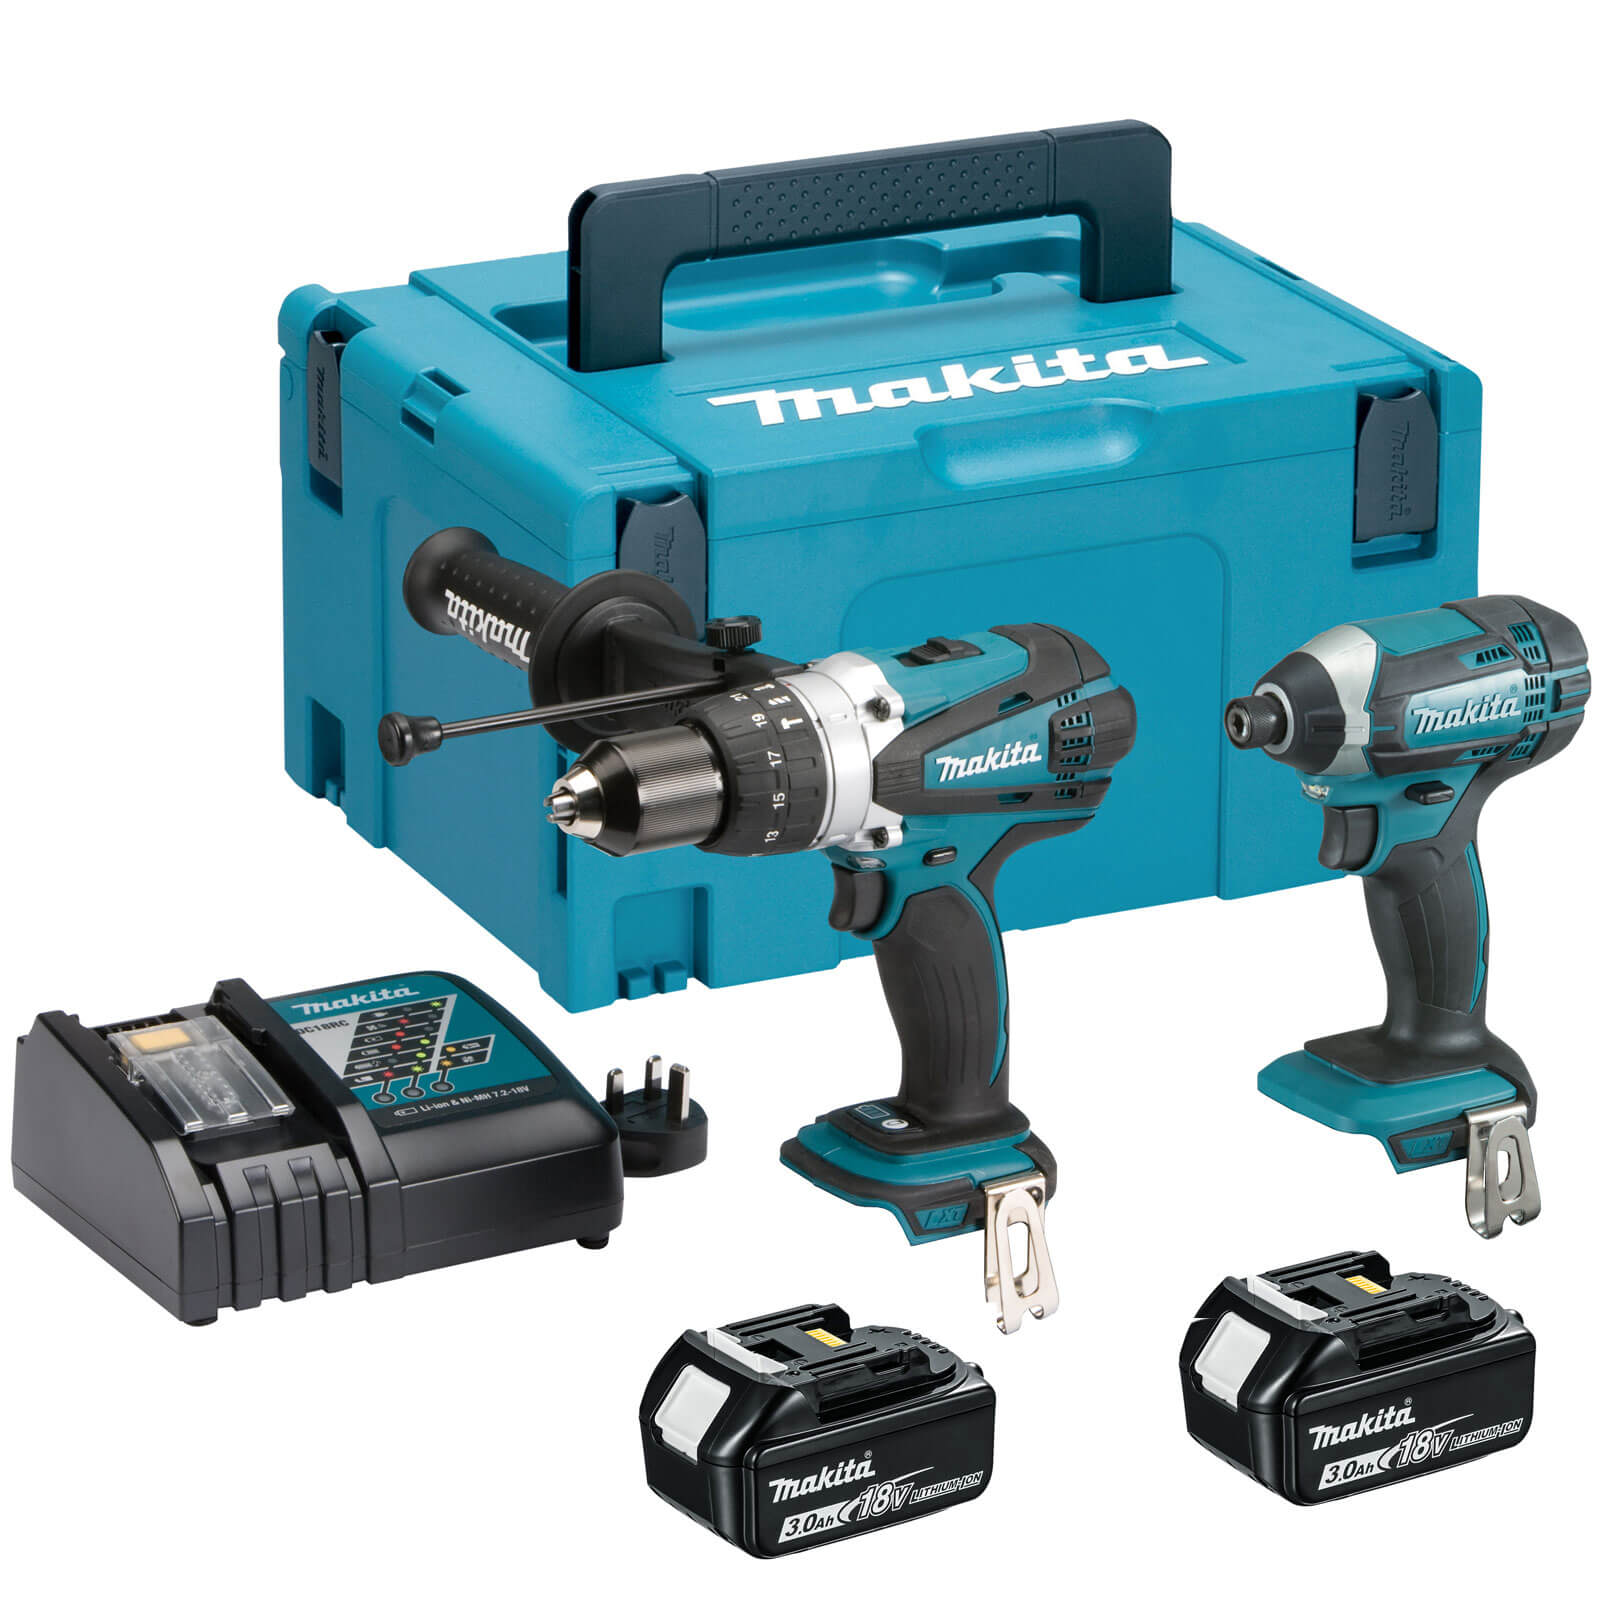 makita dlx2145 18v cordless lxt combi drill impact driver kit 2 x 3ah li ion charger case. Black Bedroom Furniture Sets. Home Design Ideas